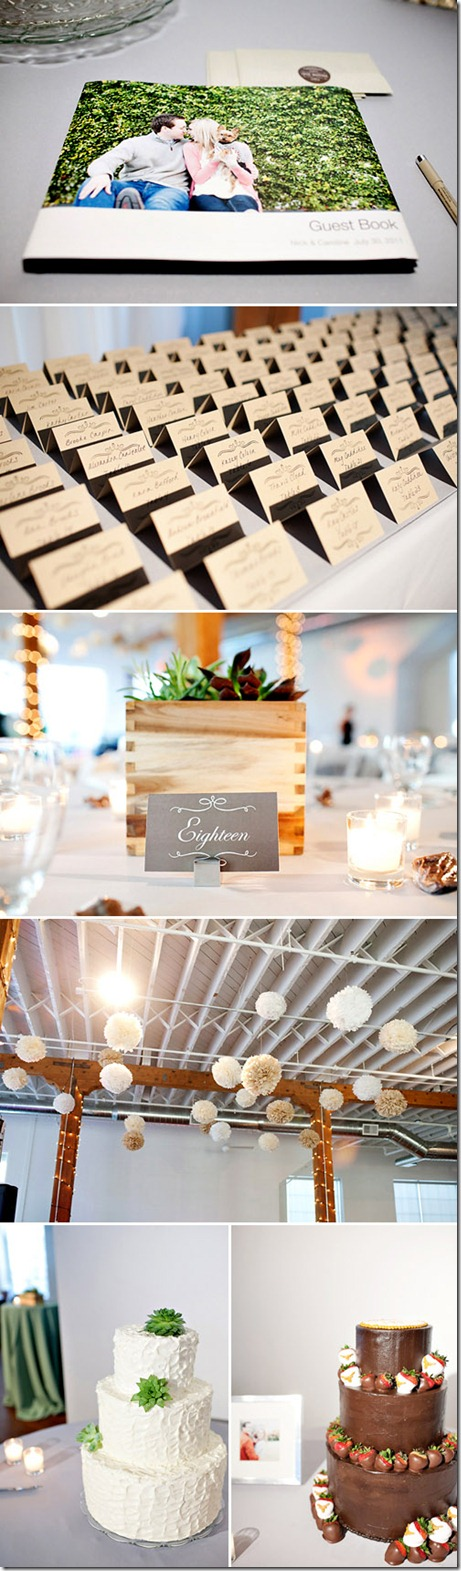 Perez Photography, 333 First Avenue, Dallas Wedding Planner, Dallas Wedding